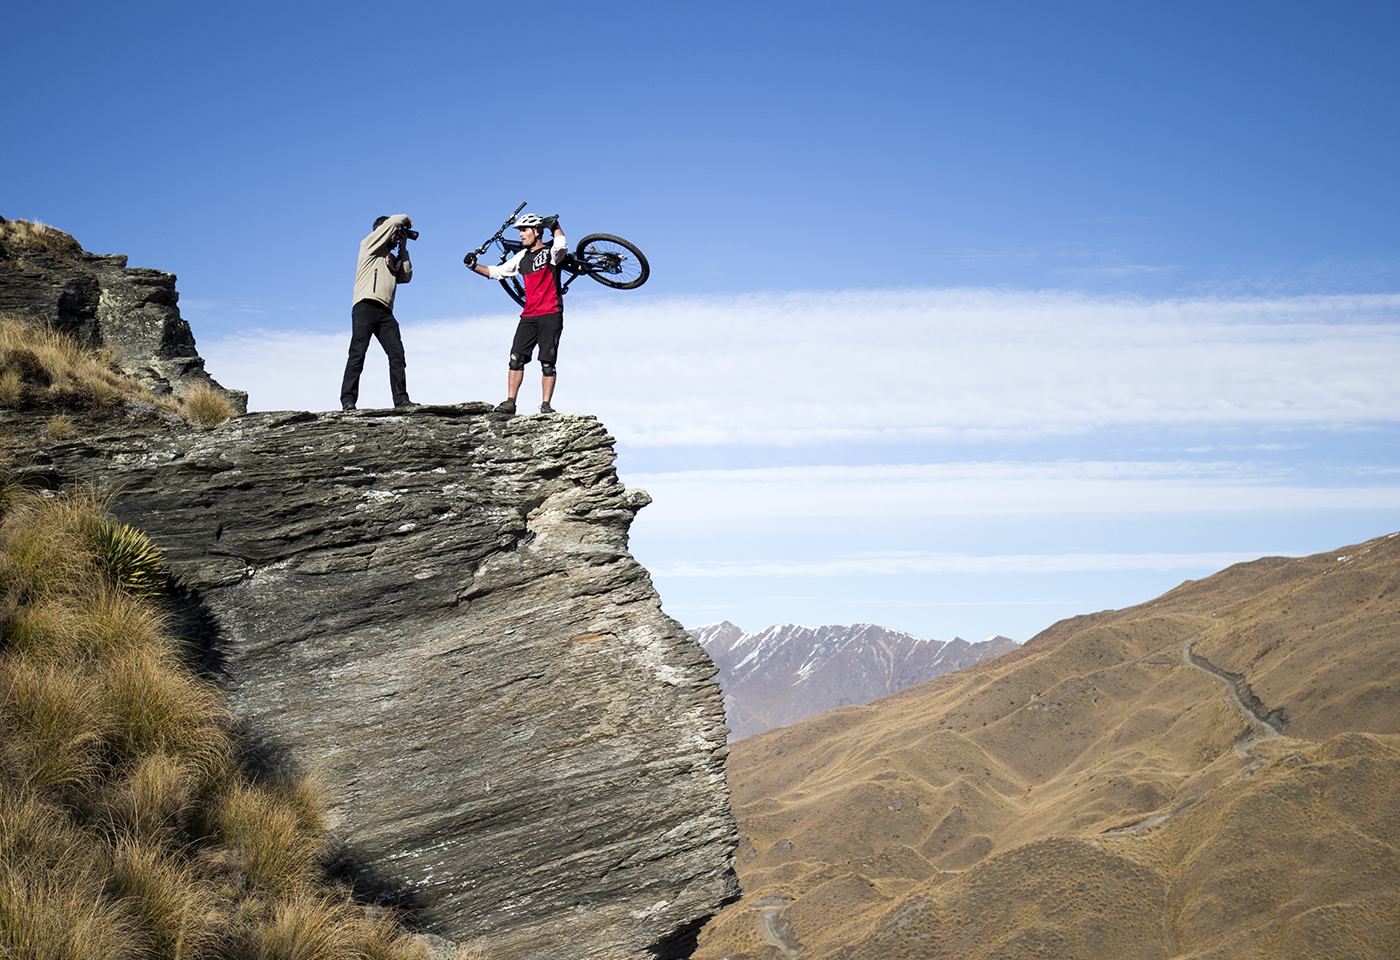 Photographer and mountain bike rider on mountain